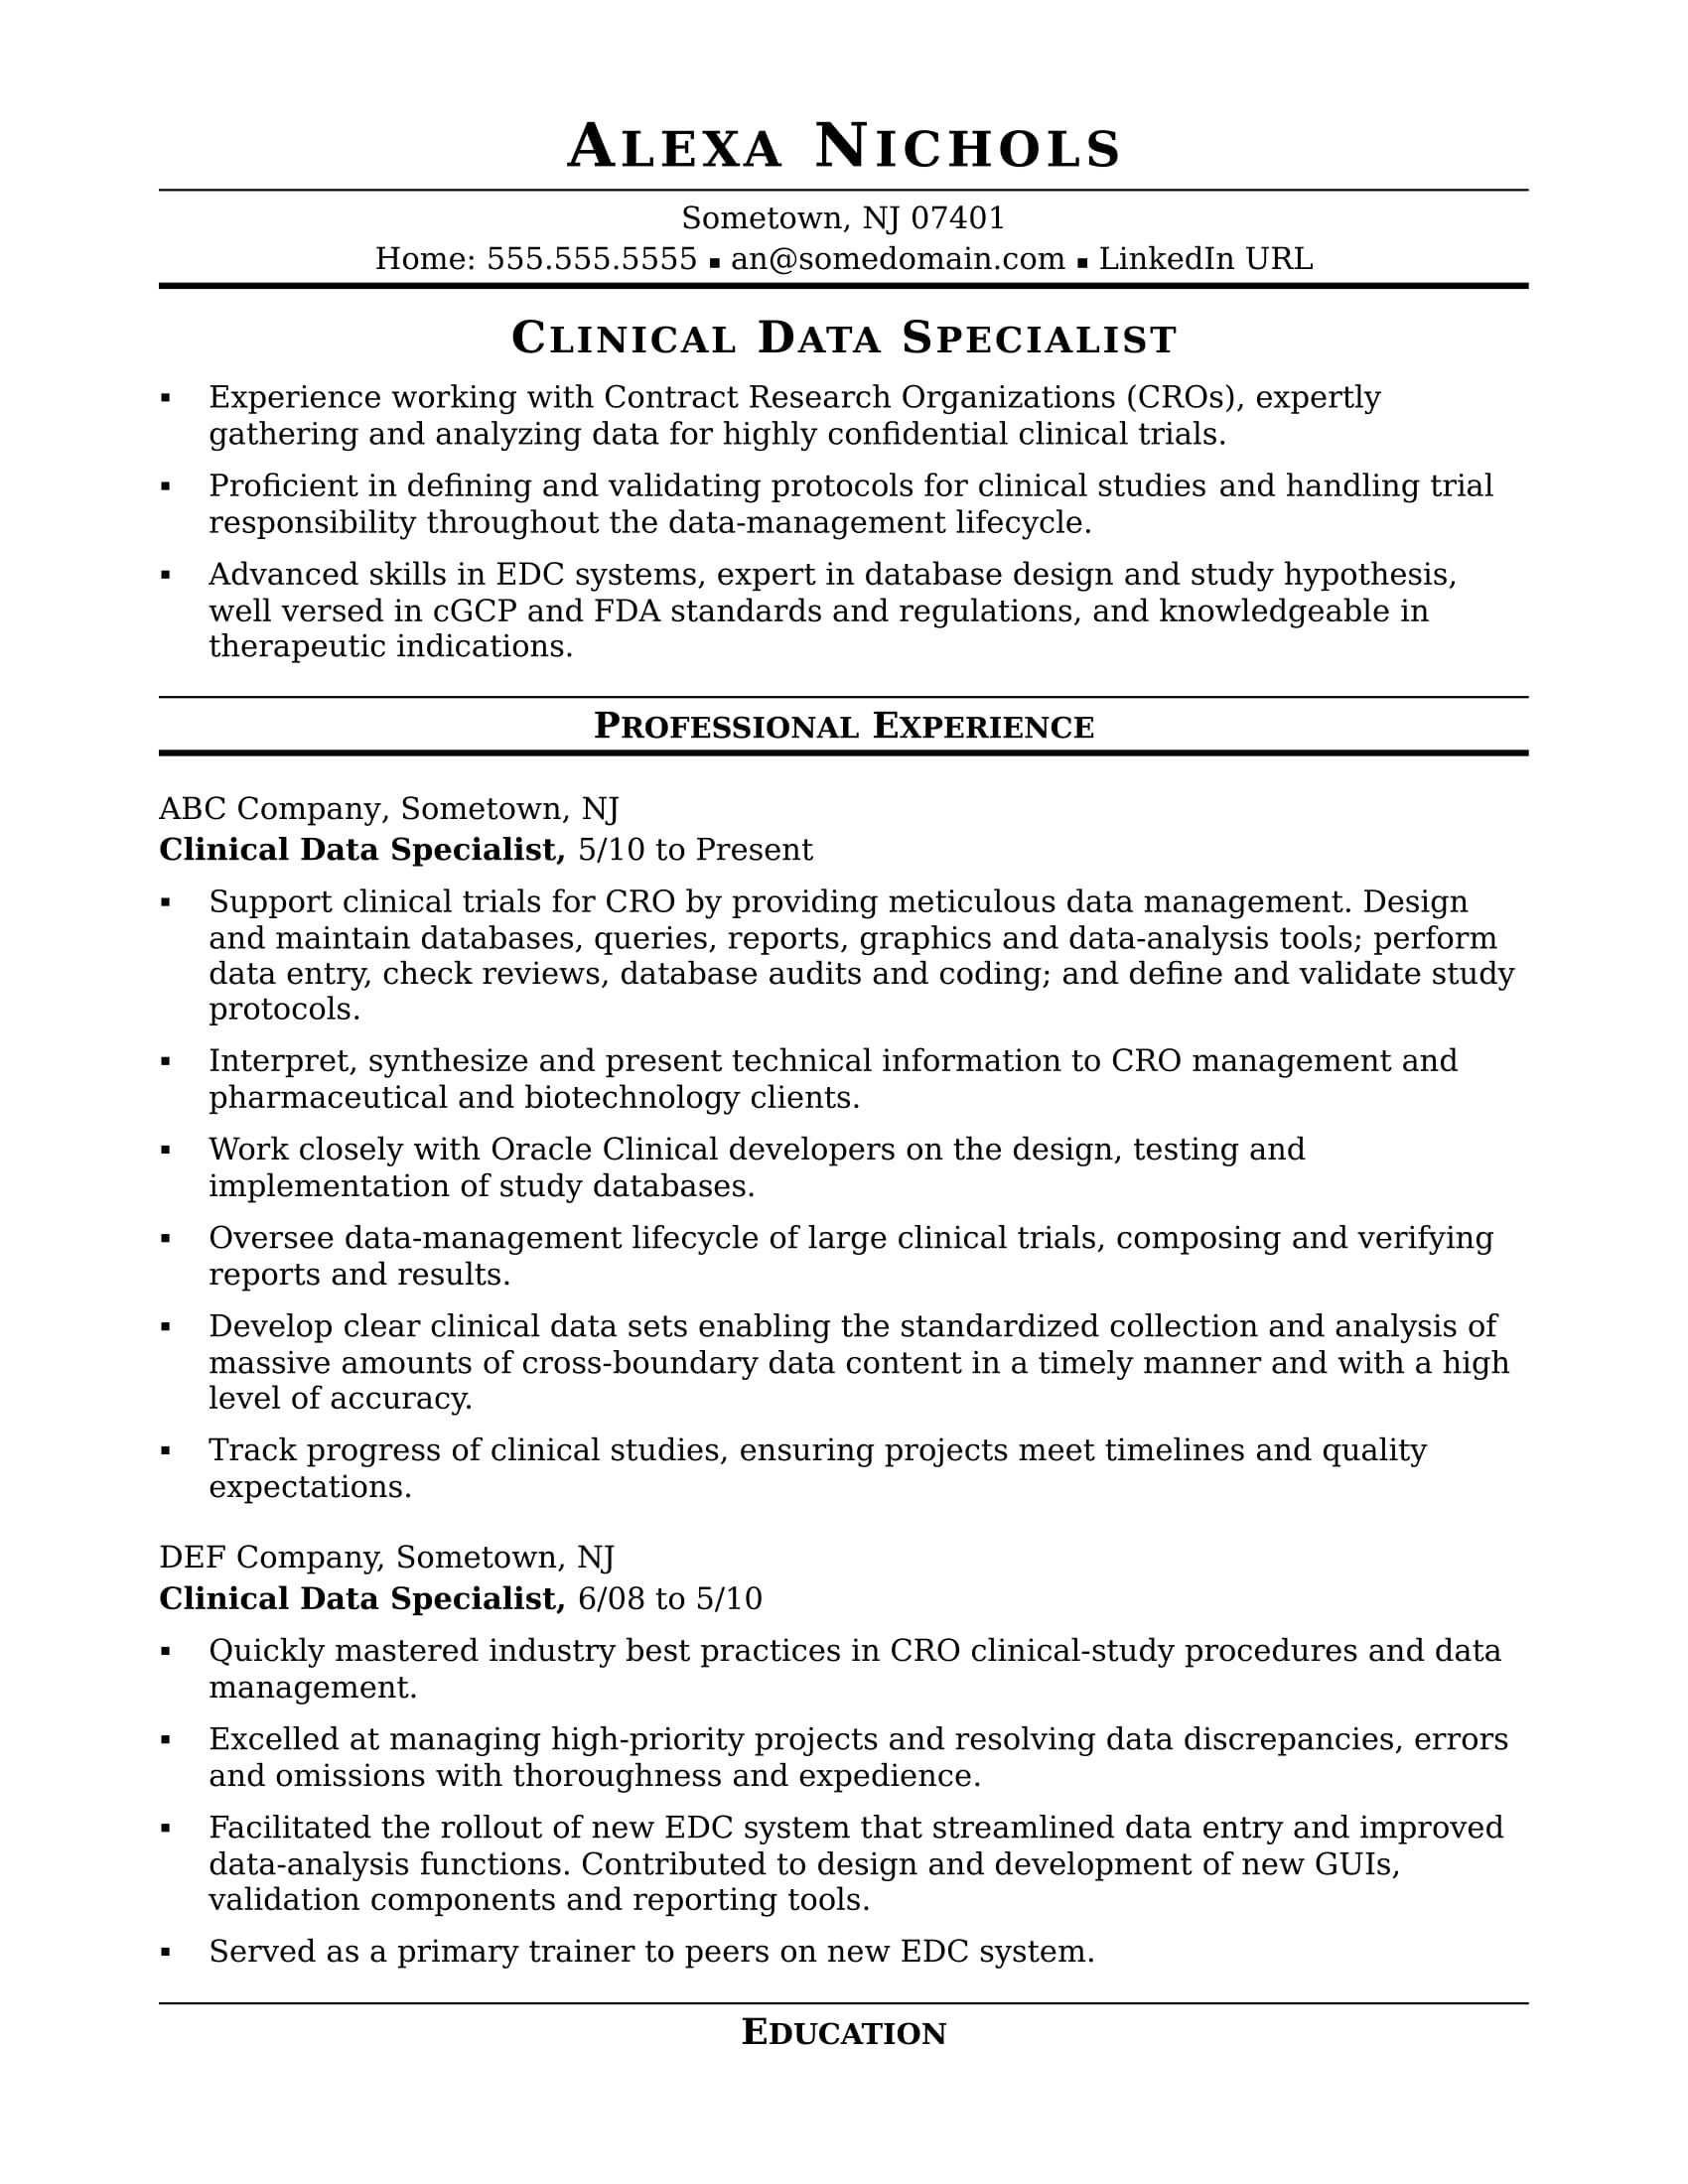 Clinical Data Specialist Resume Sample Monster Com